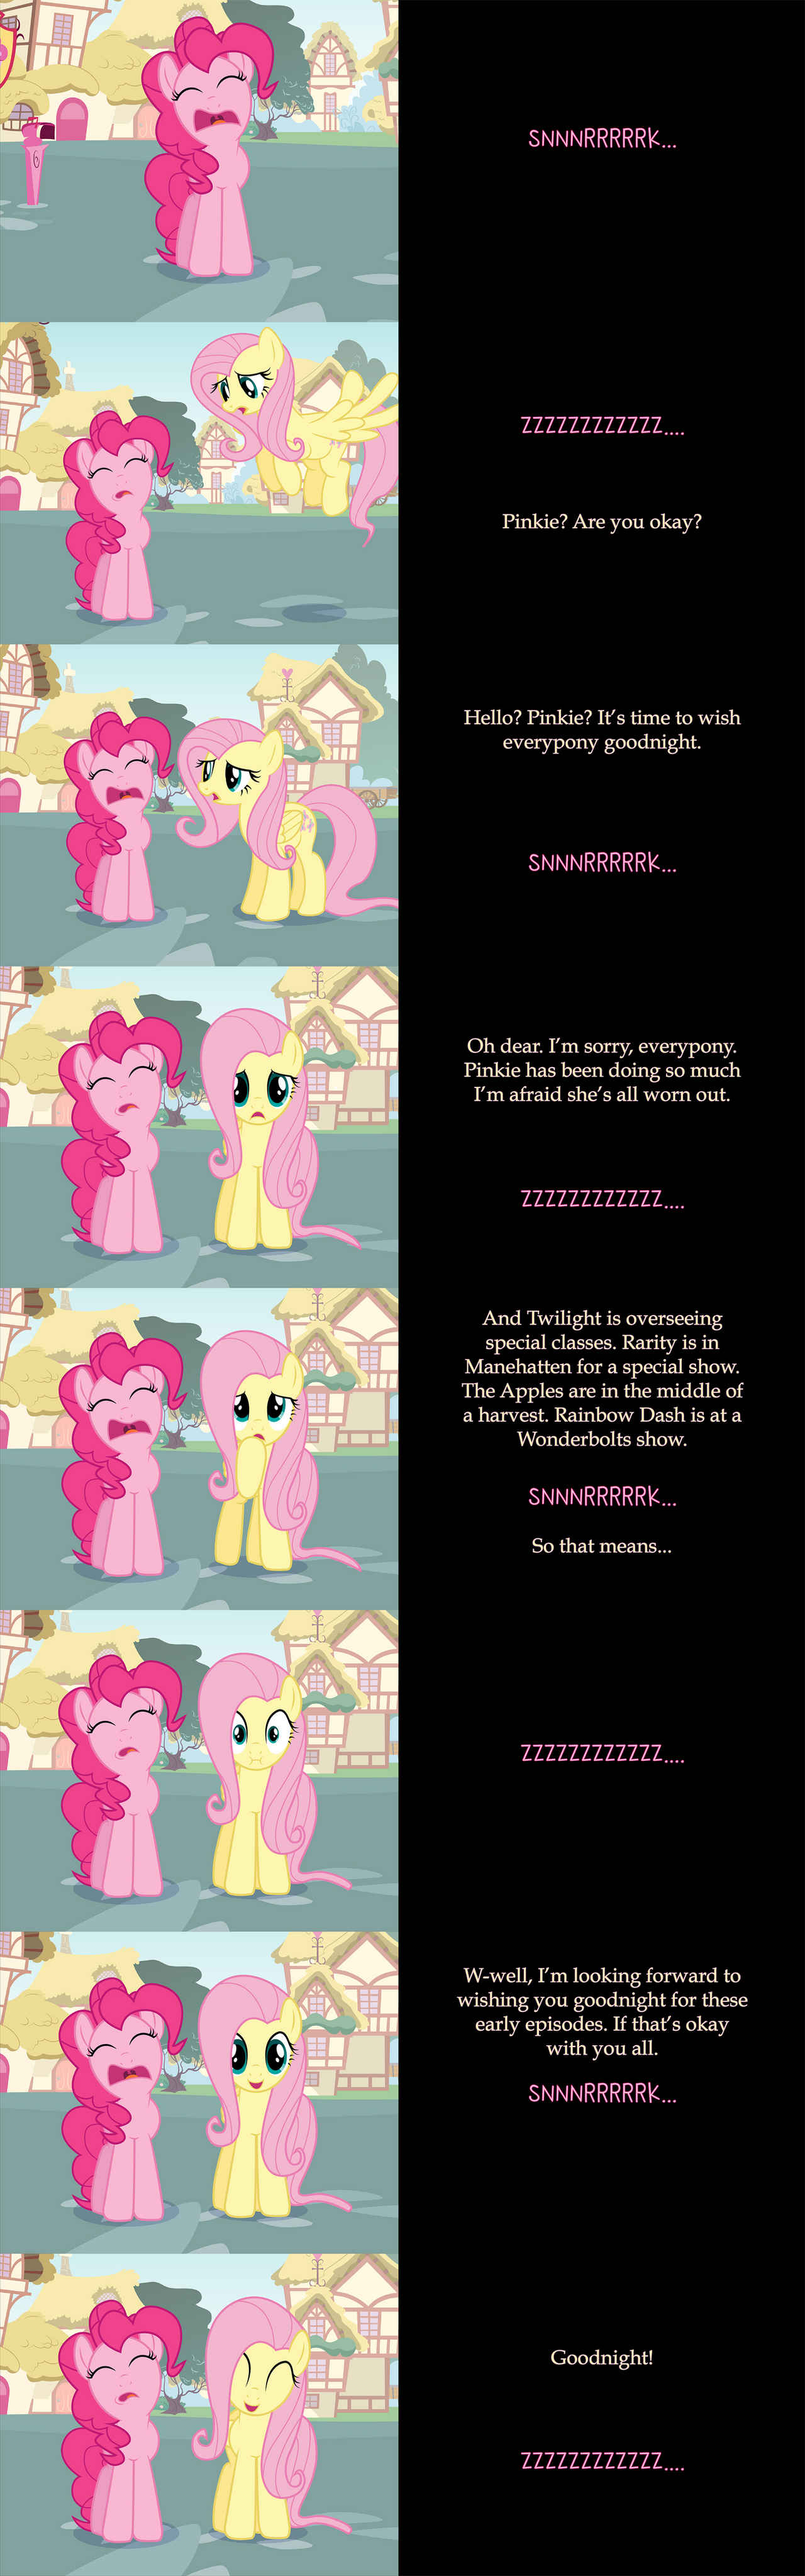 Fluttershy Says Goodnight: Substitute